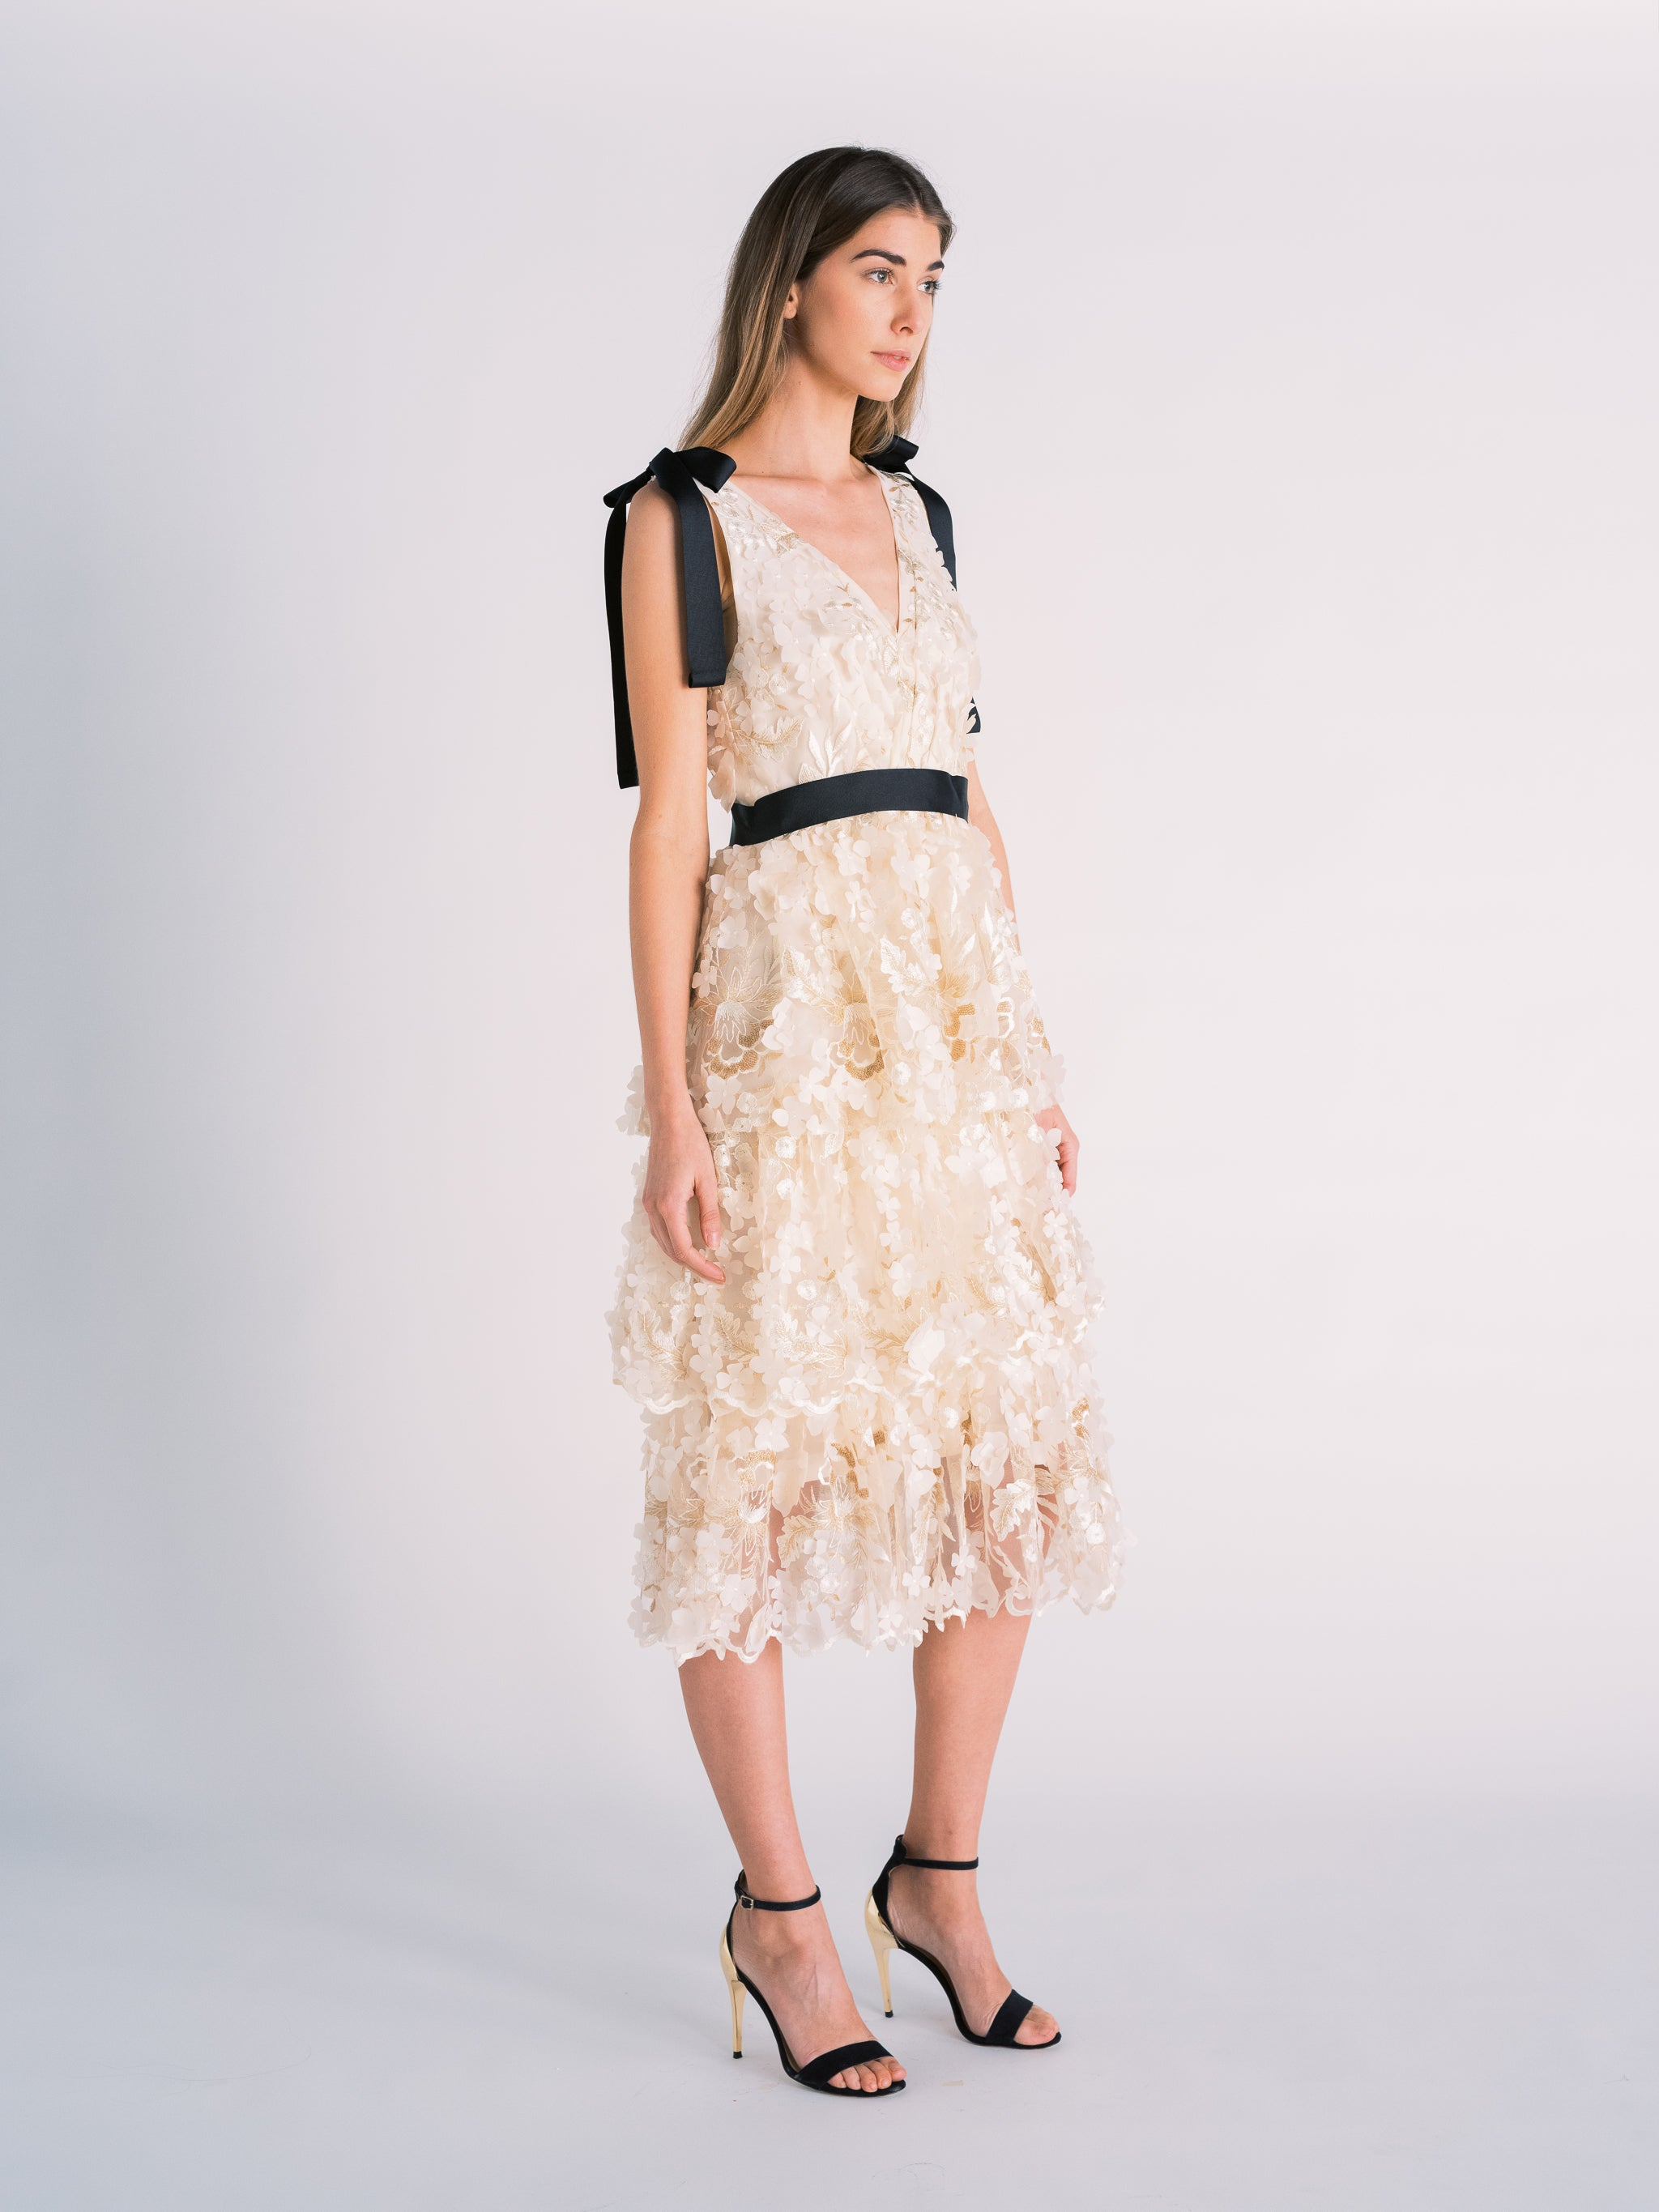 Tiered Floral Cut-out Dress in Off-white